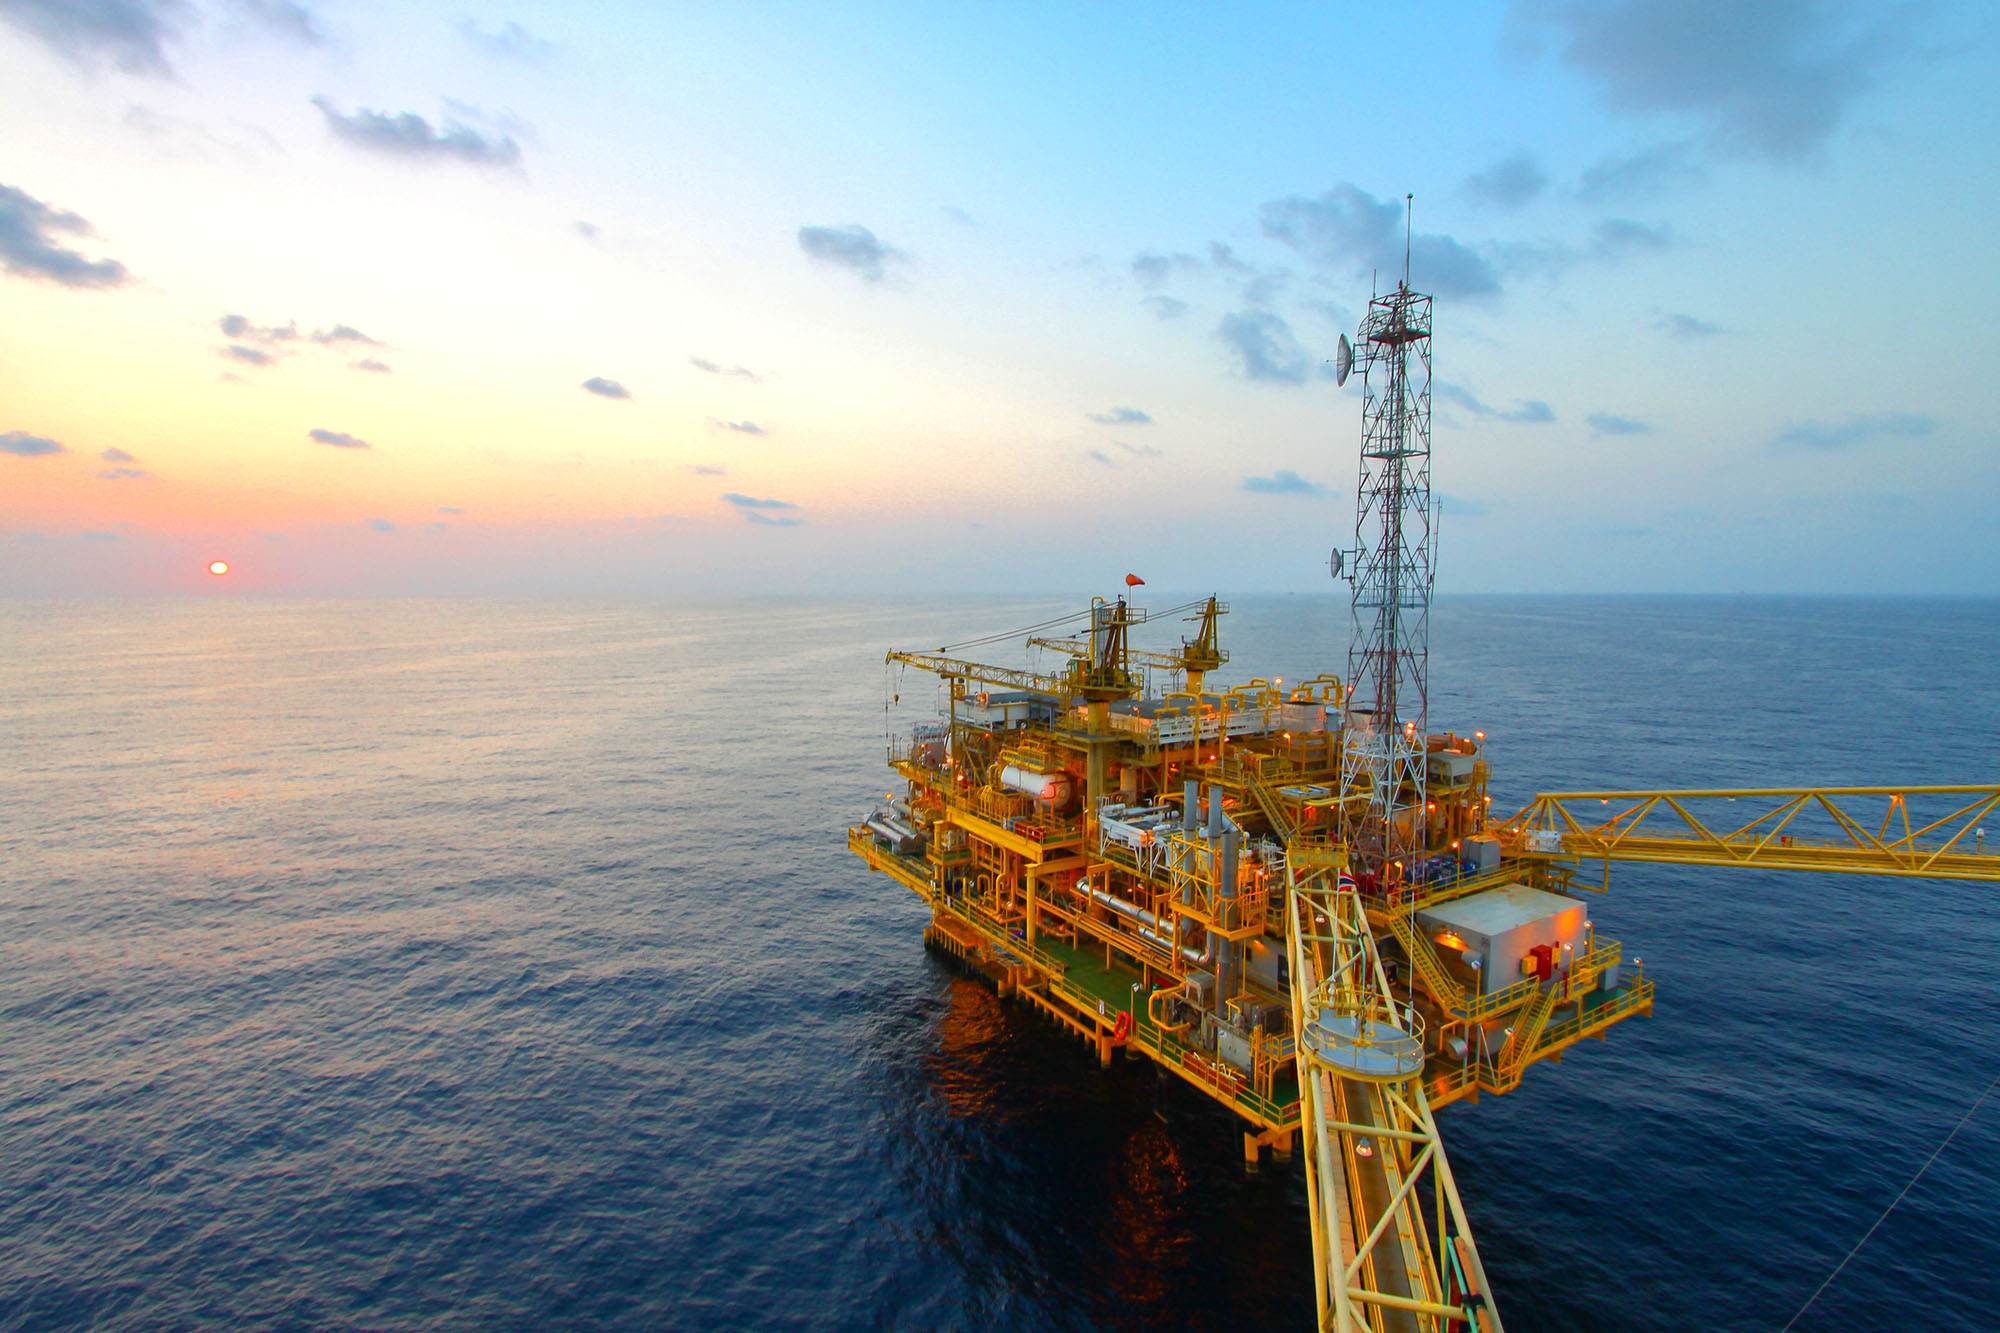 Oil and gas platform in sunset or sunrise time